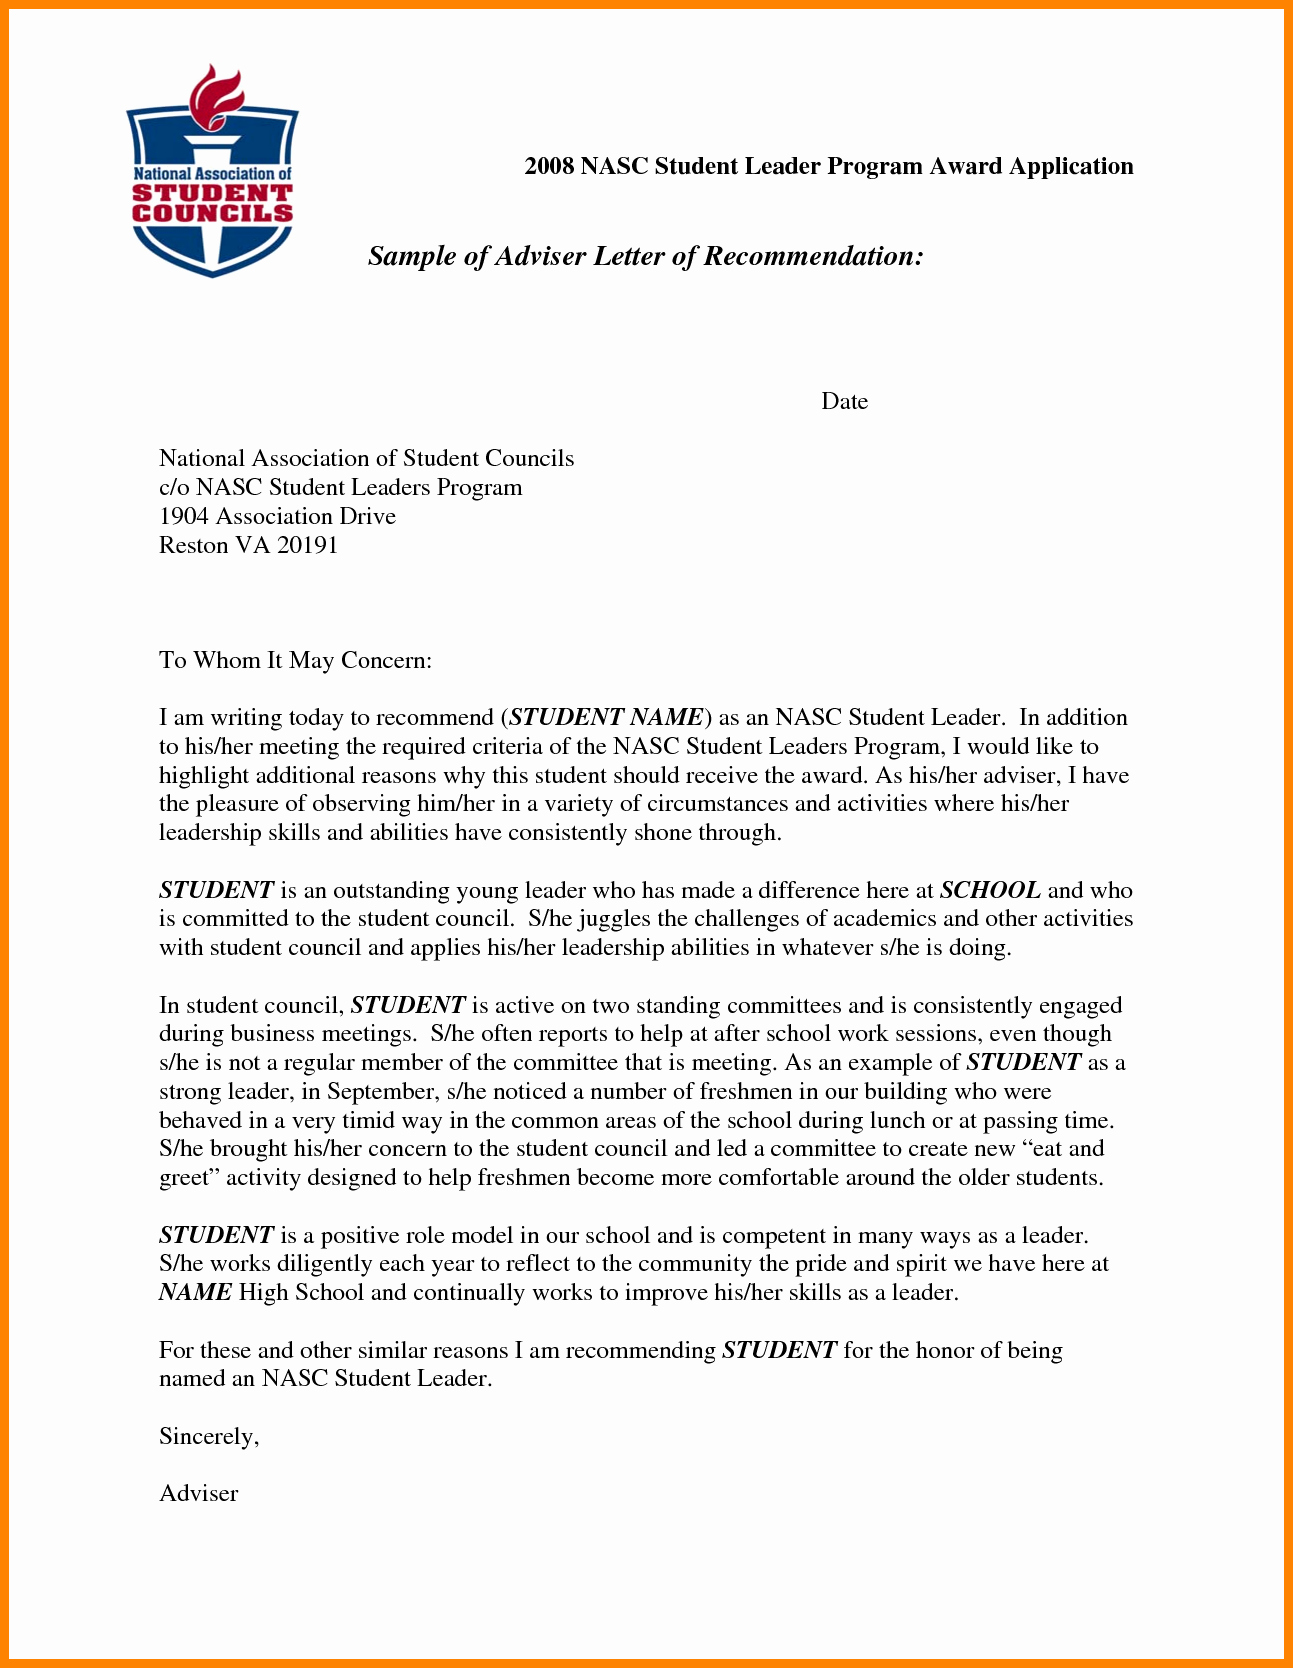 Study Abroad Recommendation Letter Fresh 5 Re Mendation Letter Sample for Student Scholarship